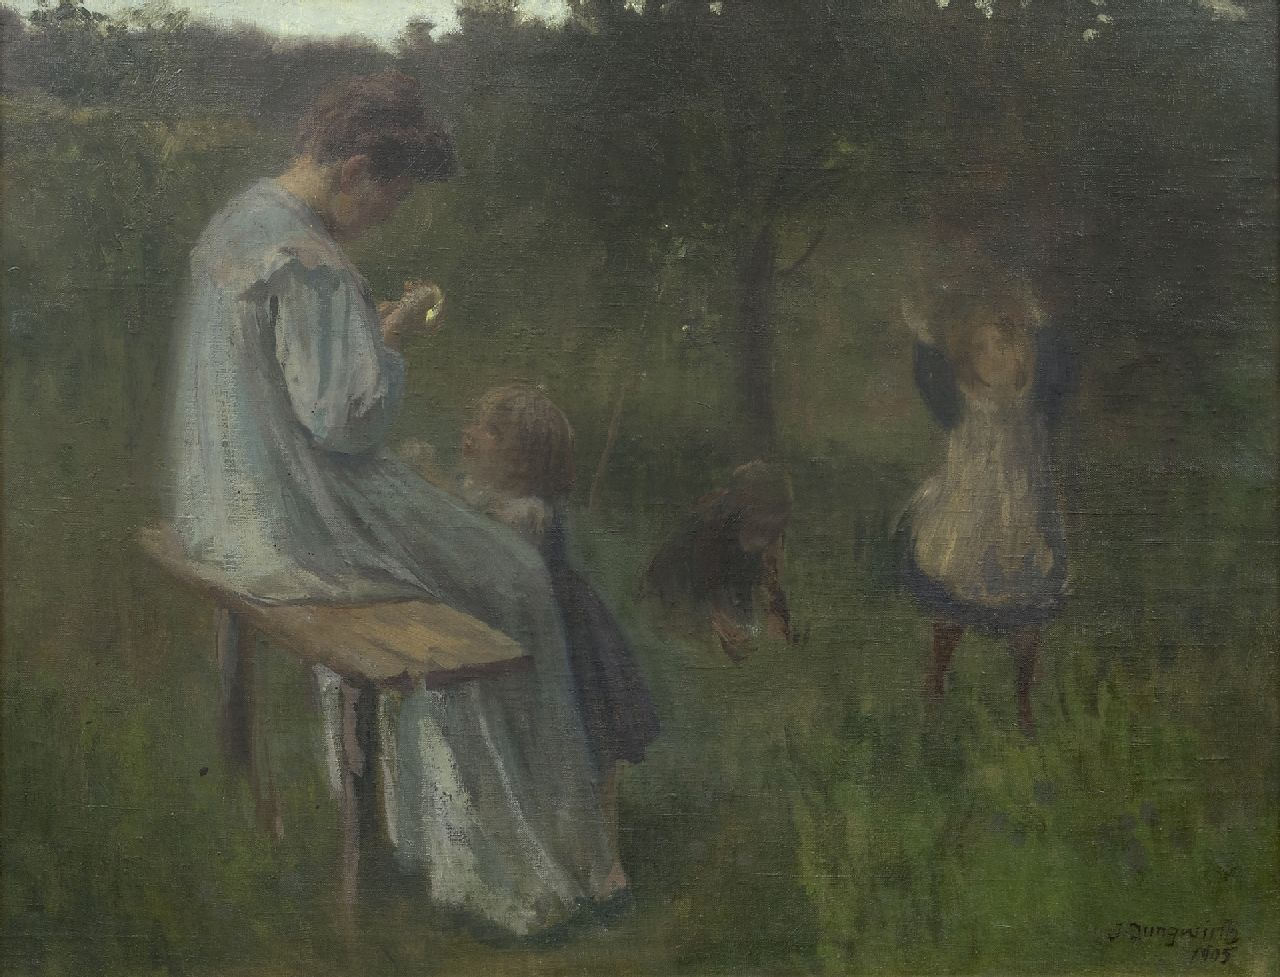 Joseph Jungwirth | A mother with playing children, oil on canvas, 62.8 x 79.4 cm, signed l.r. and dated 1905